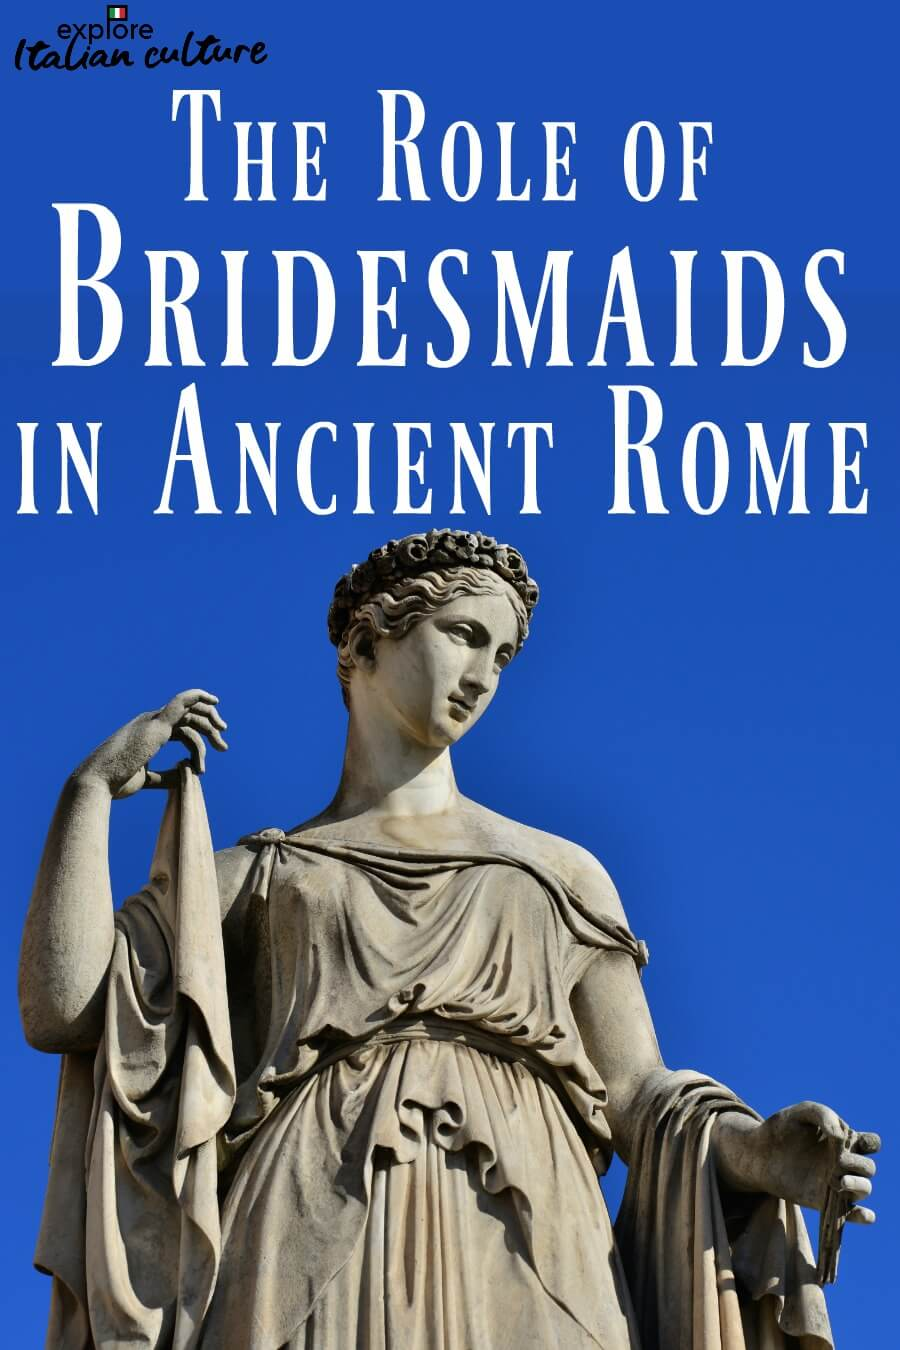 Bridesmaid duties in ancient Rome and modern Italian culture. Pin for later.